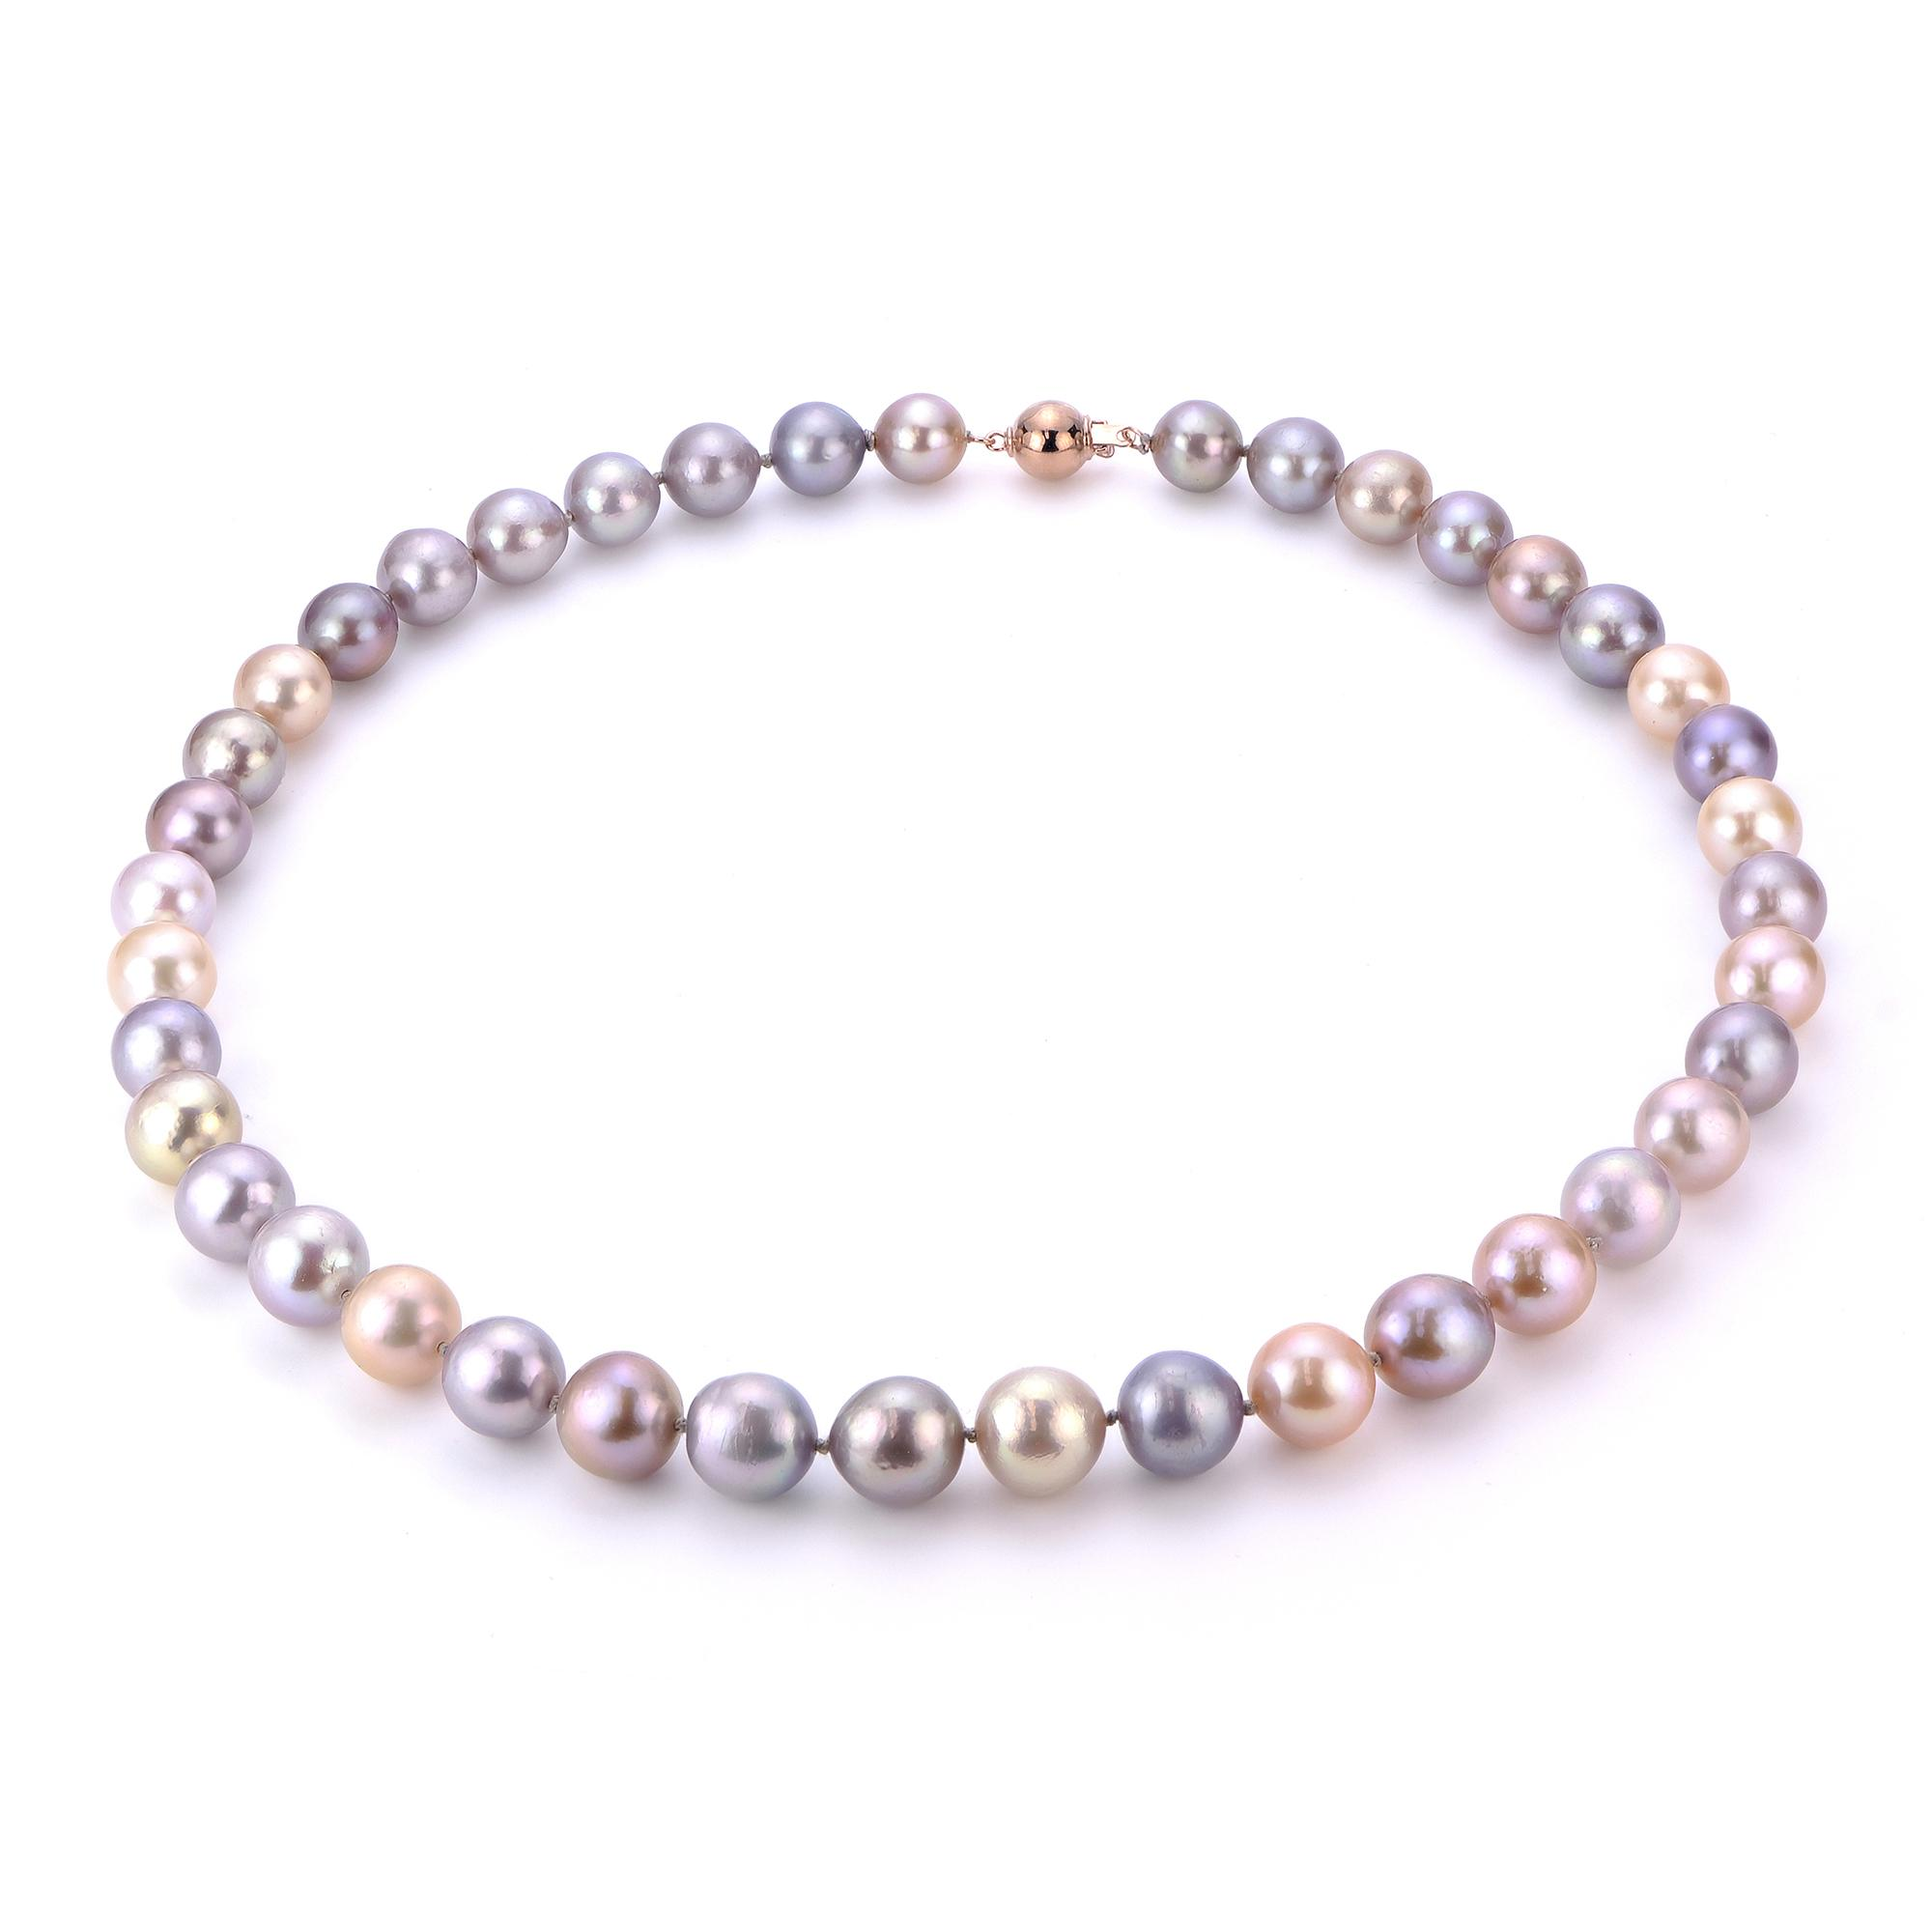 68174b567ec580 Home · All Jewelry · Necklaces; 14K Rose Gold Freshwater Pearl Necklace